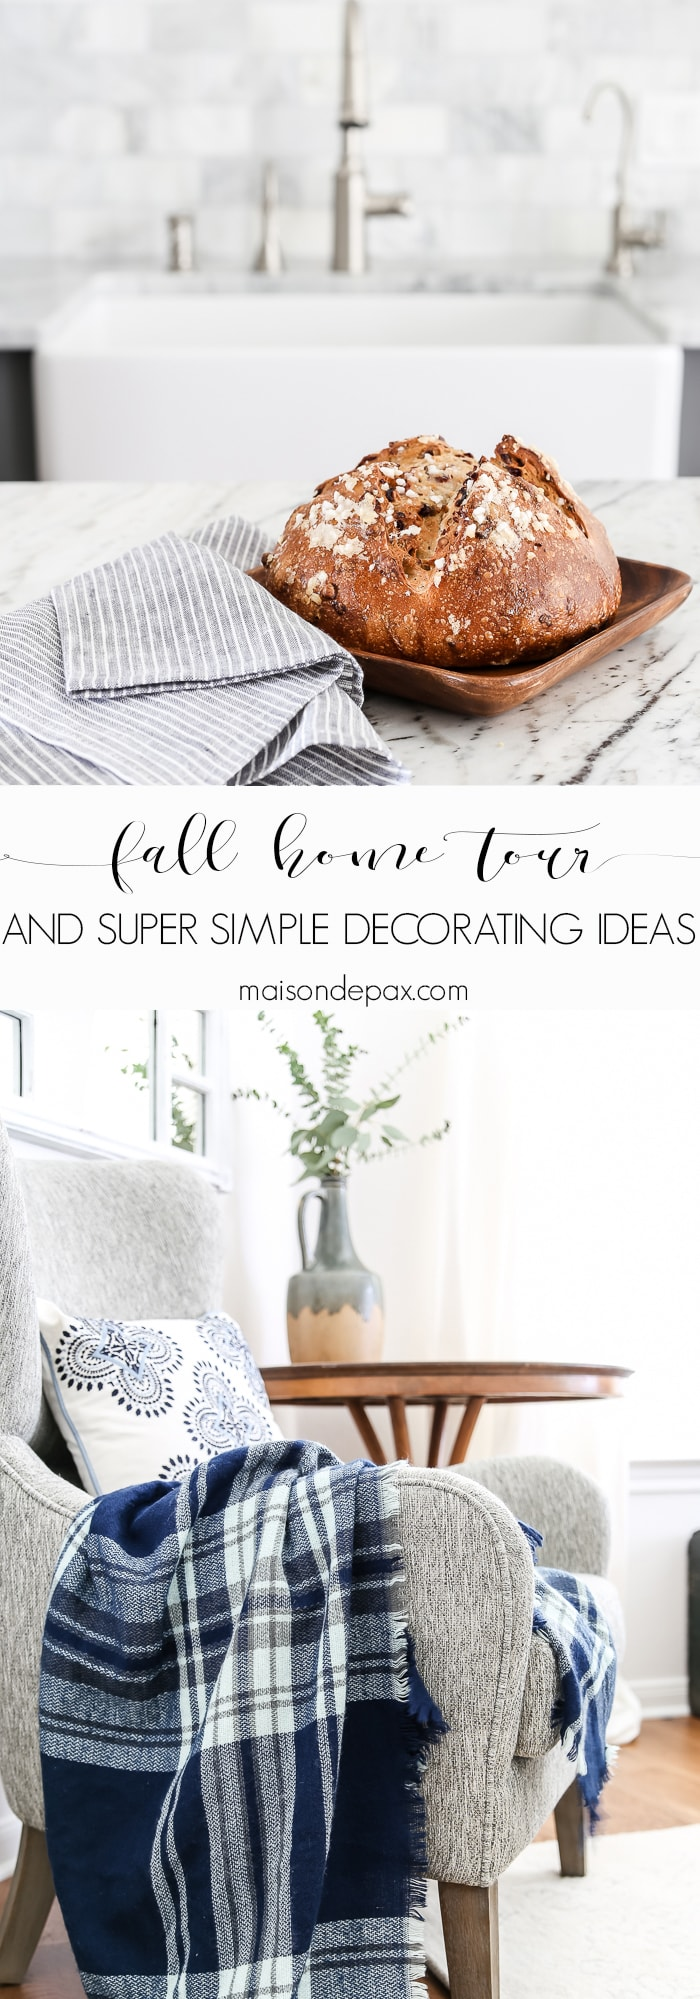 Add fall decor touches to your home in 15 minutes or less- Maison de Pax